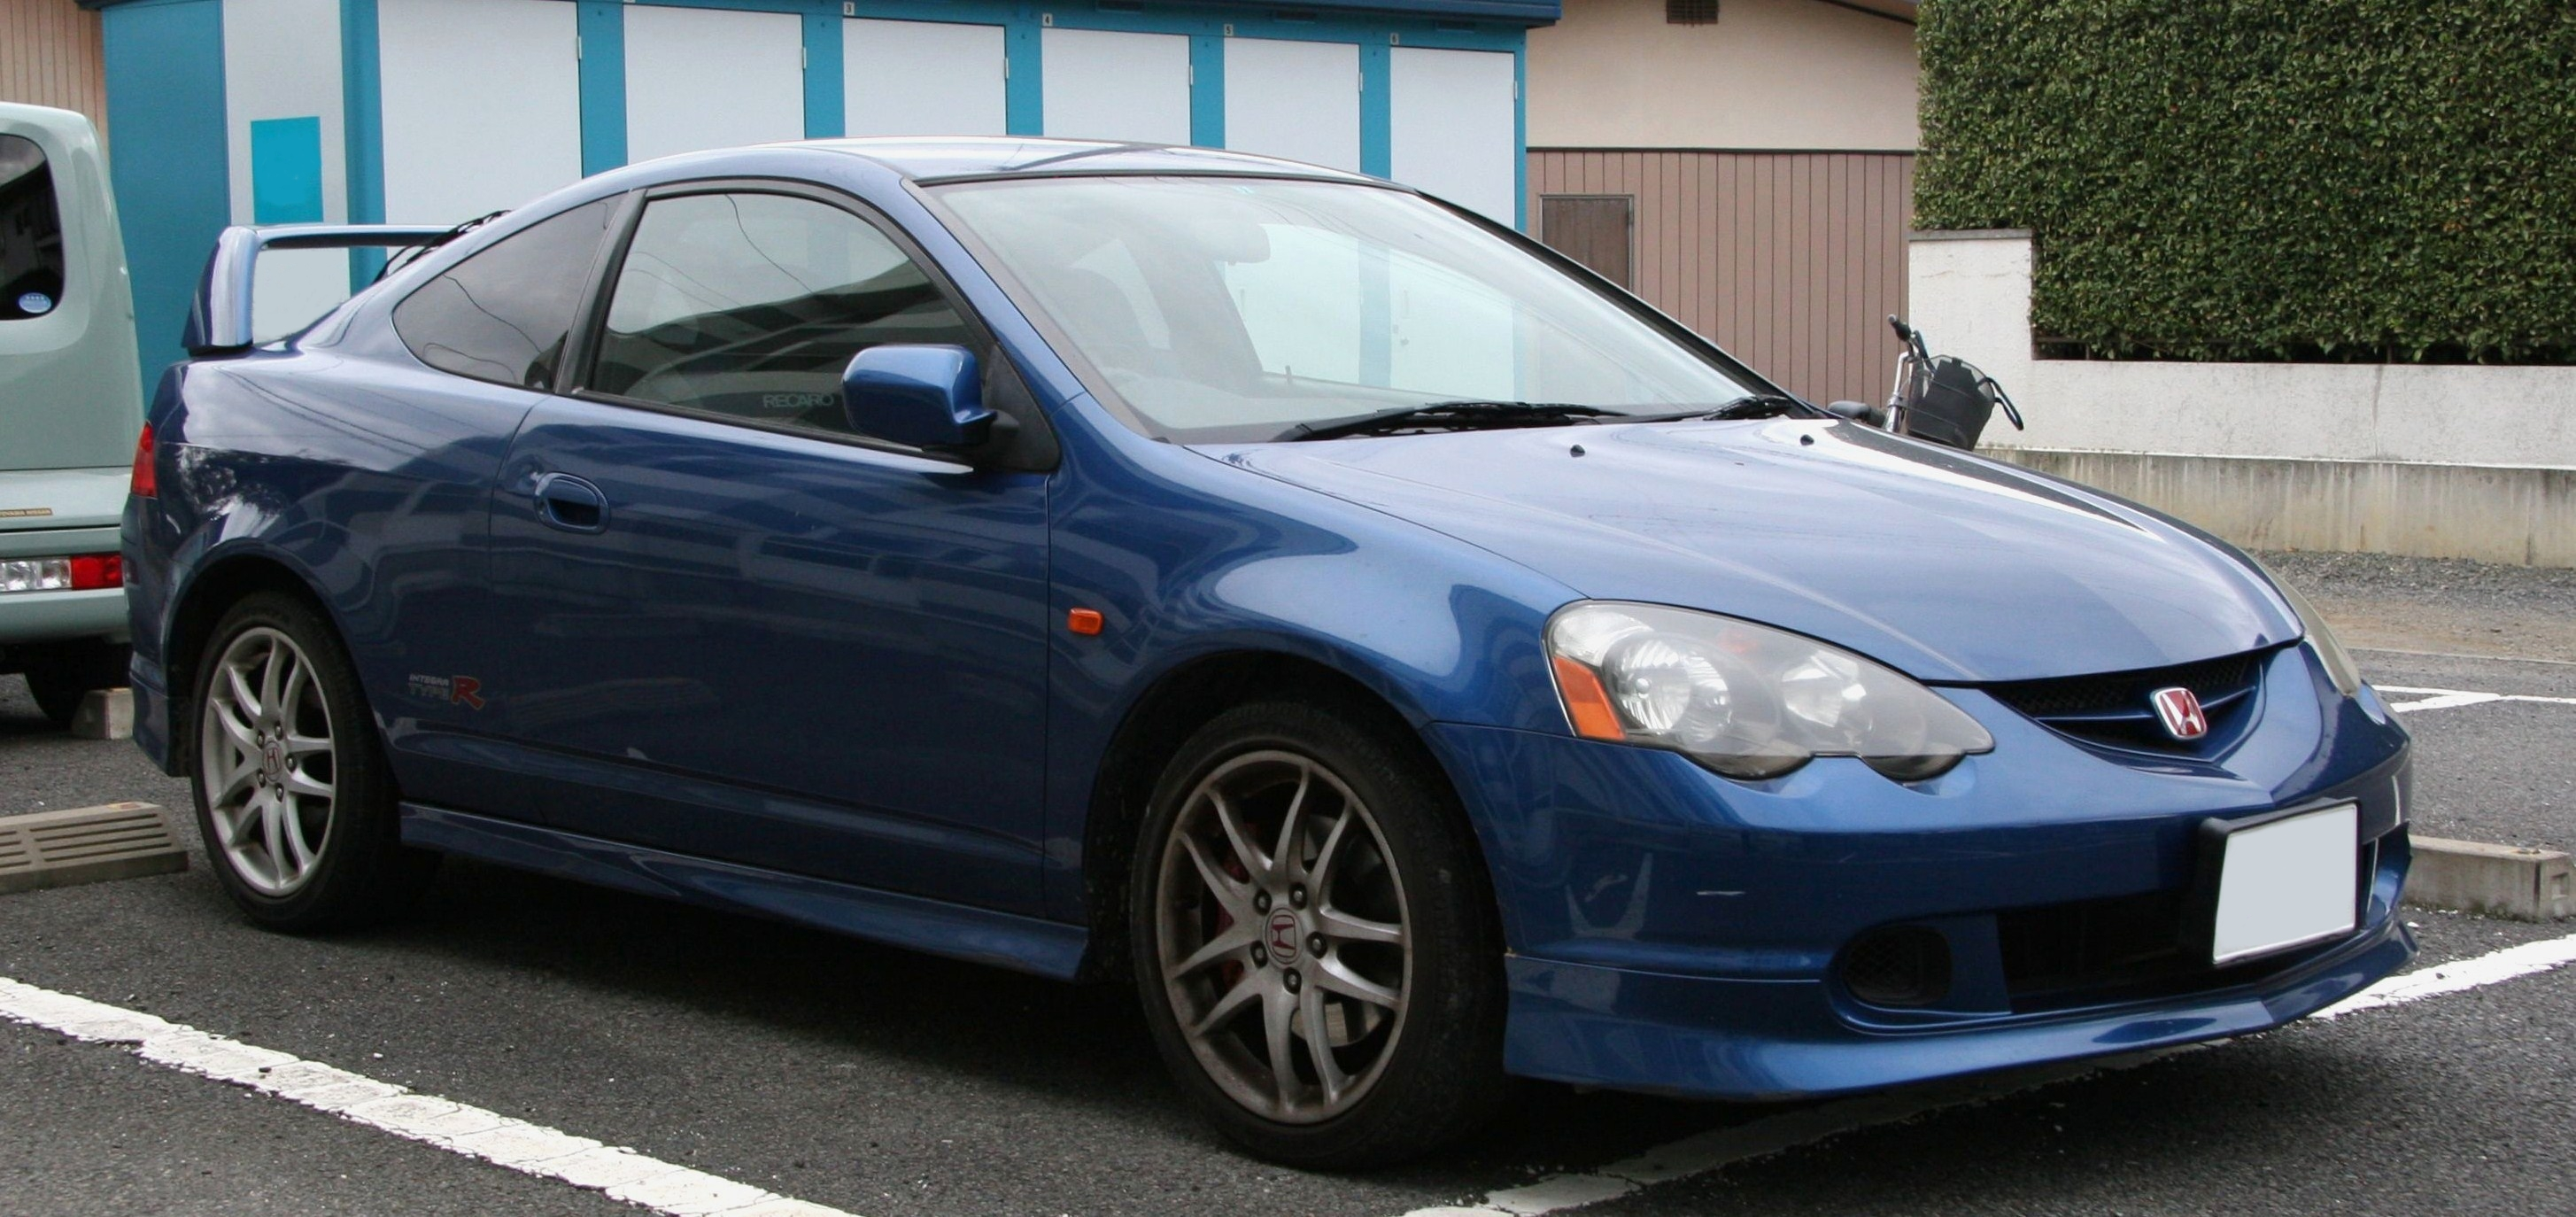 file:2001-2004 honda integra type-r - wikimedia commons